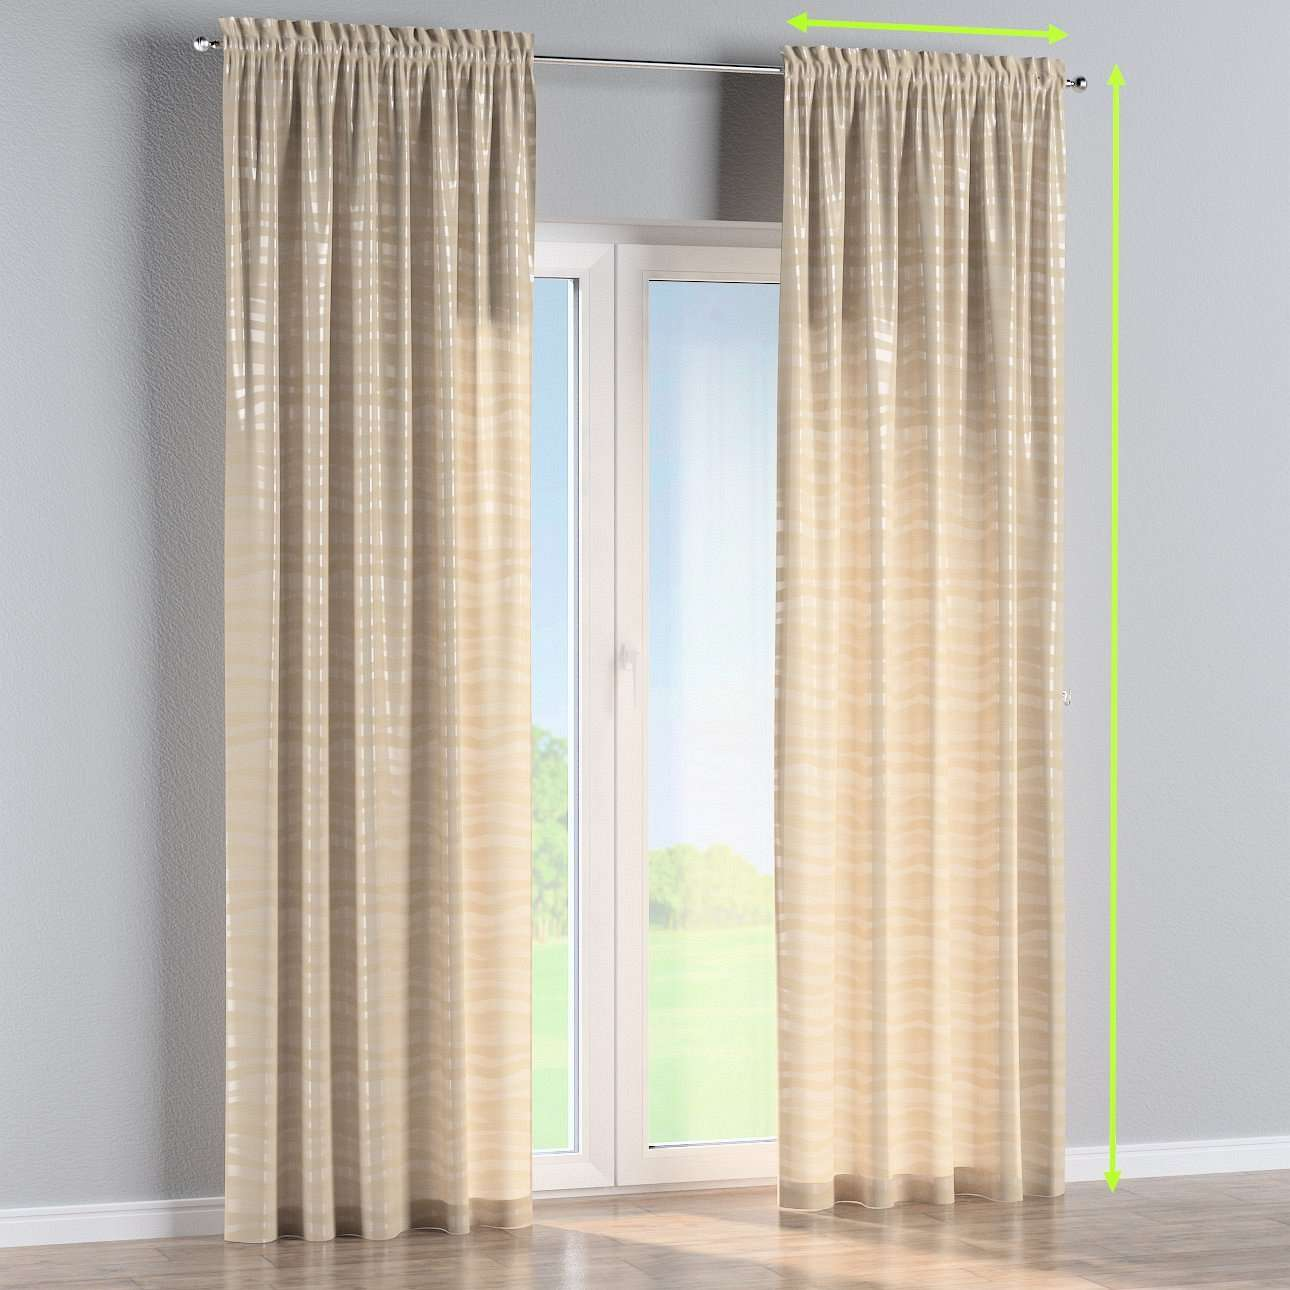 Slot and frill lined curtains in collection Damasco, fabric: 141-76